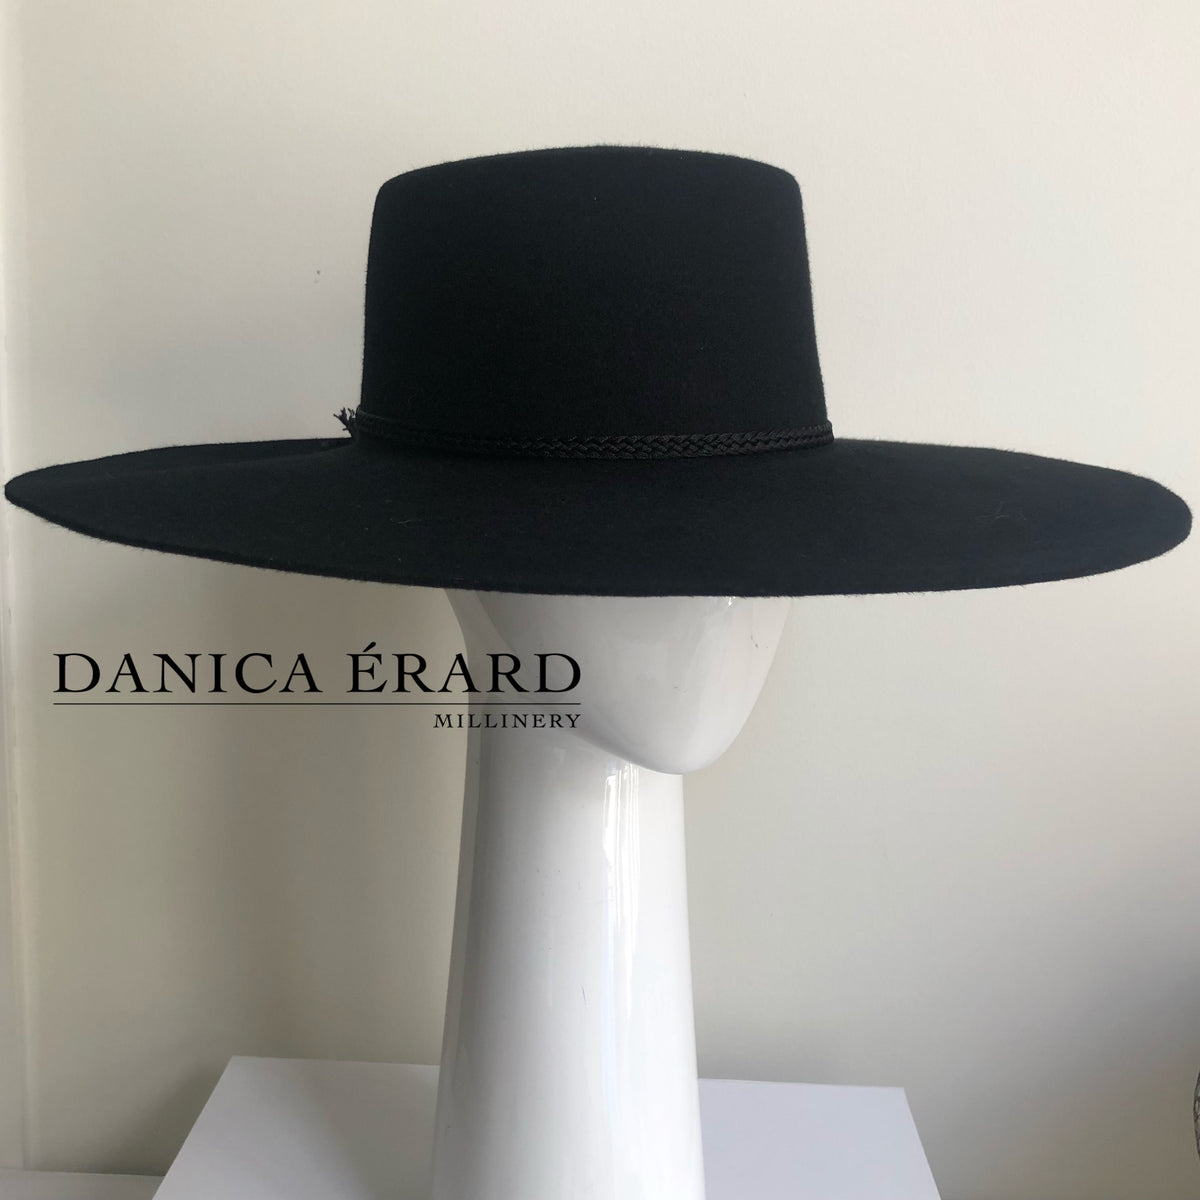 LADY B ~ Exclusive Danica Erard Millinery Design